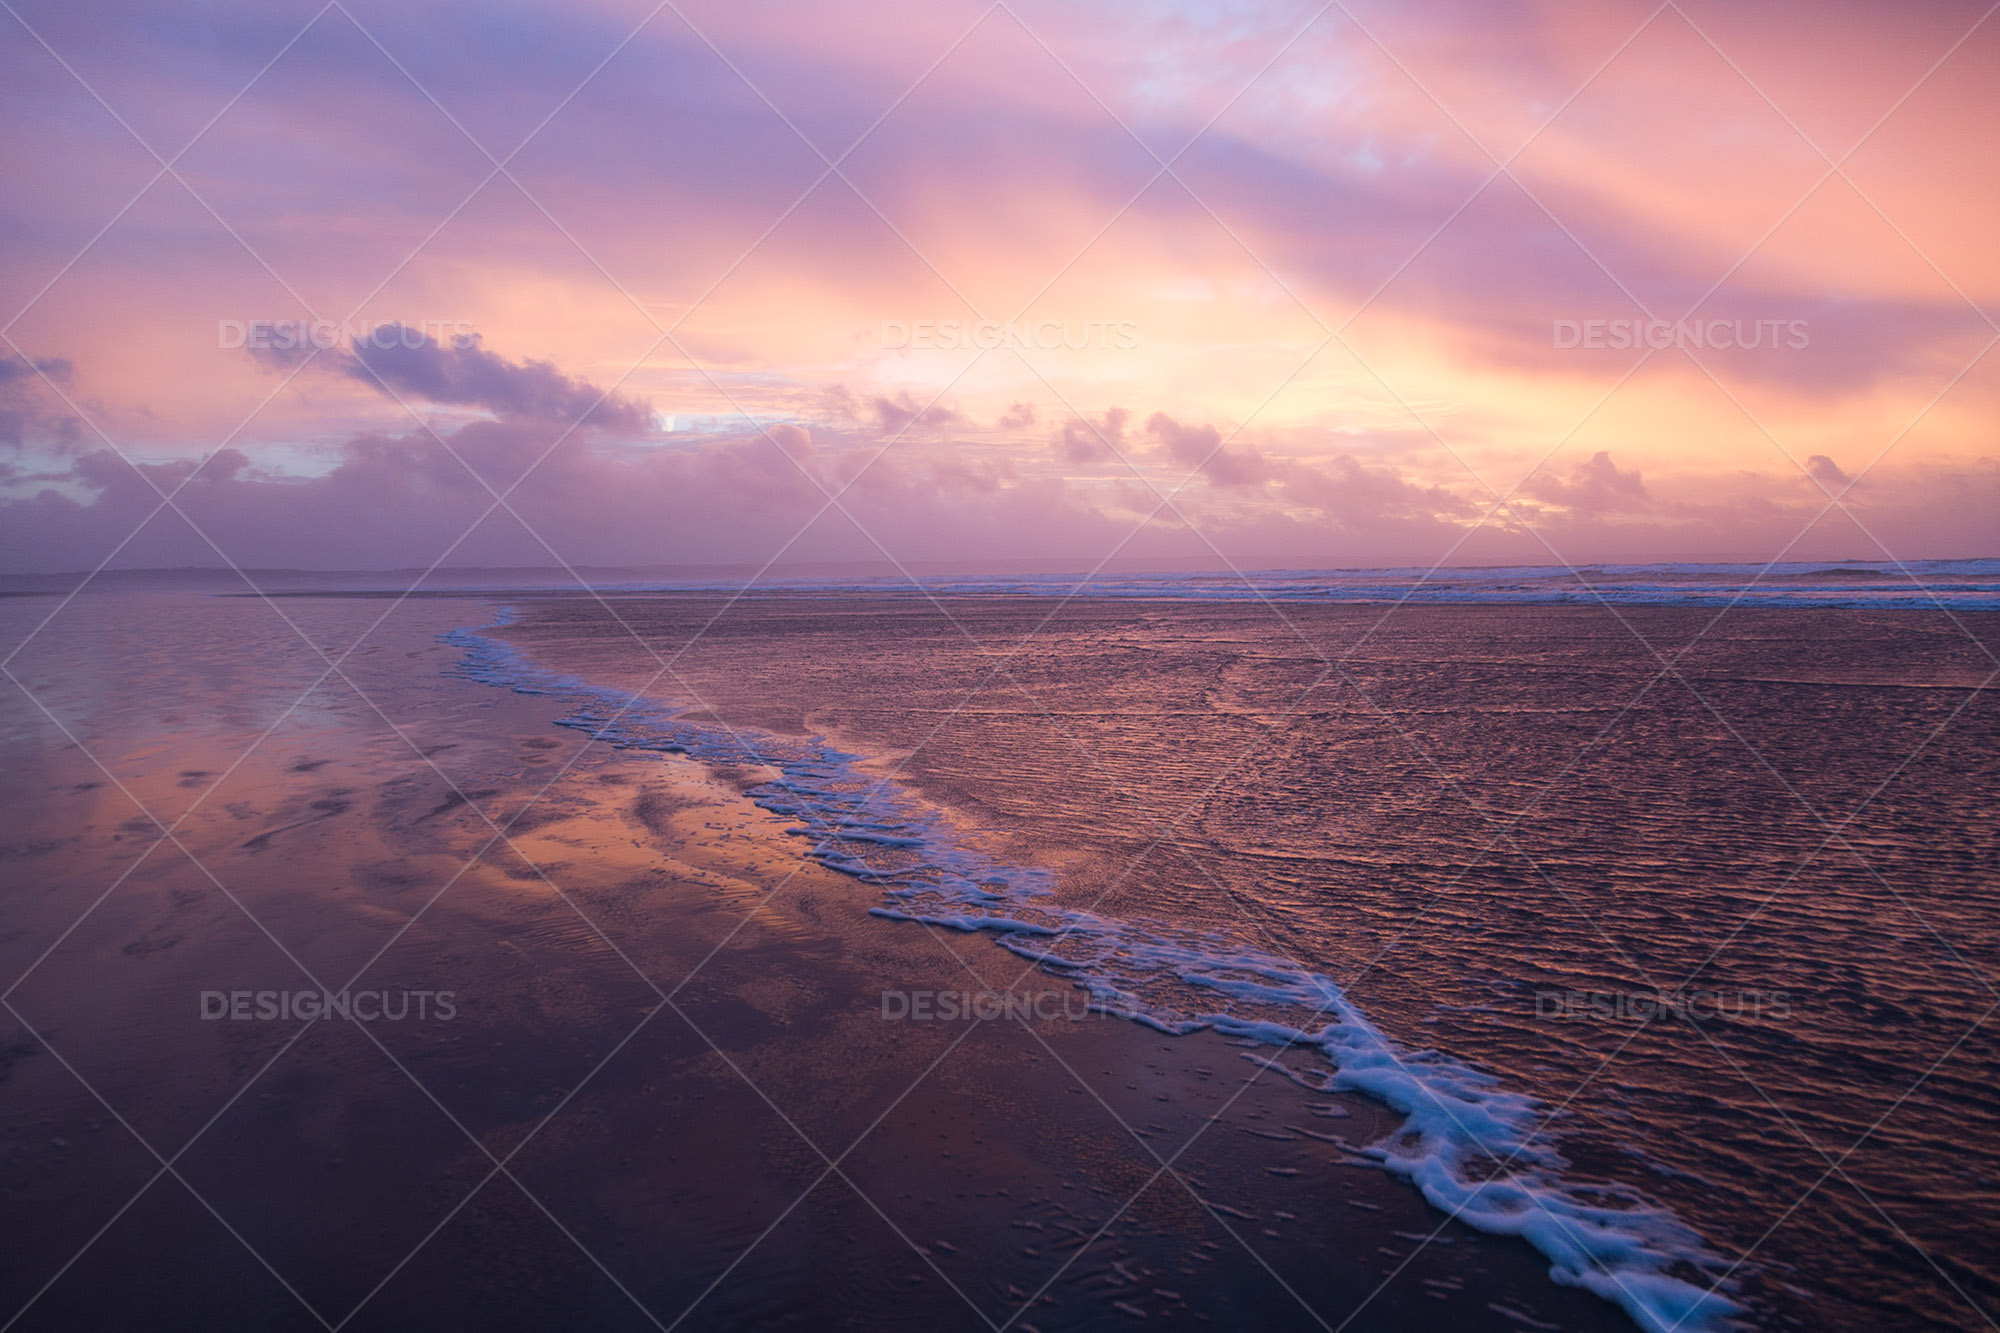 Wind Blowing Surface Water Over The Beach At Saunton Sands, Devon At Sunset 8